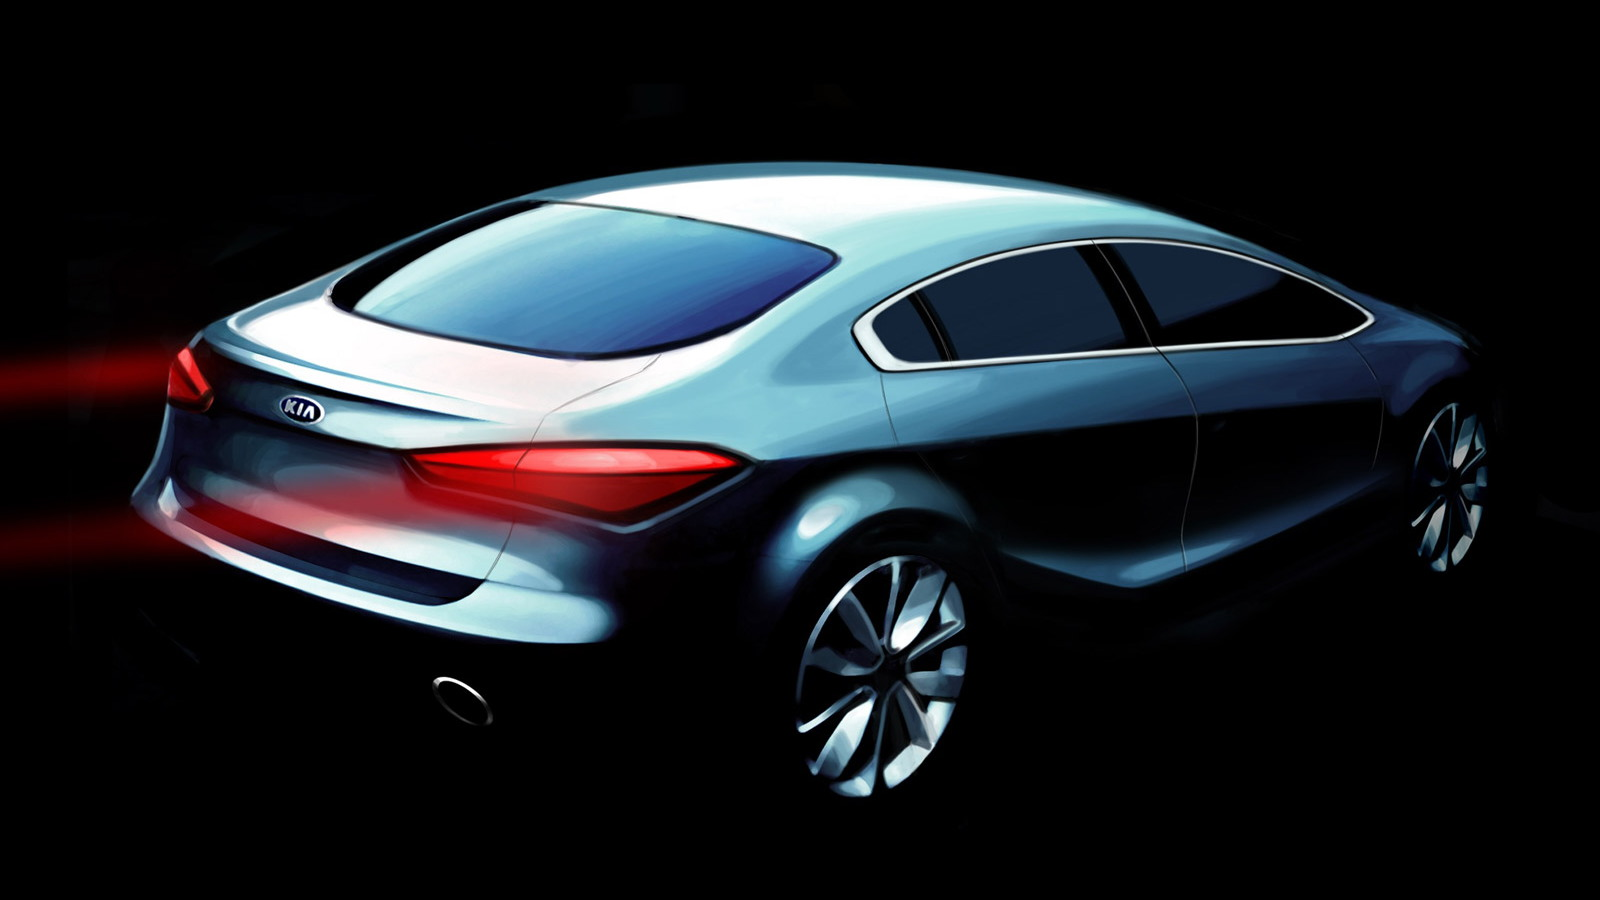 2014 Kia Forte Sedan teaser sketch